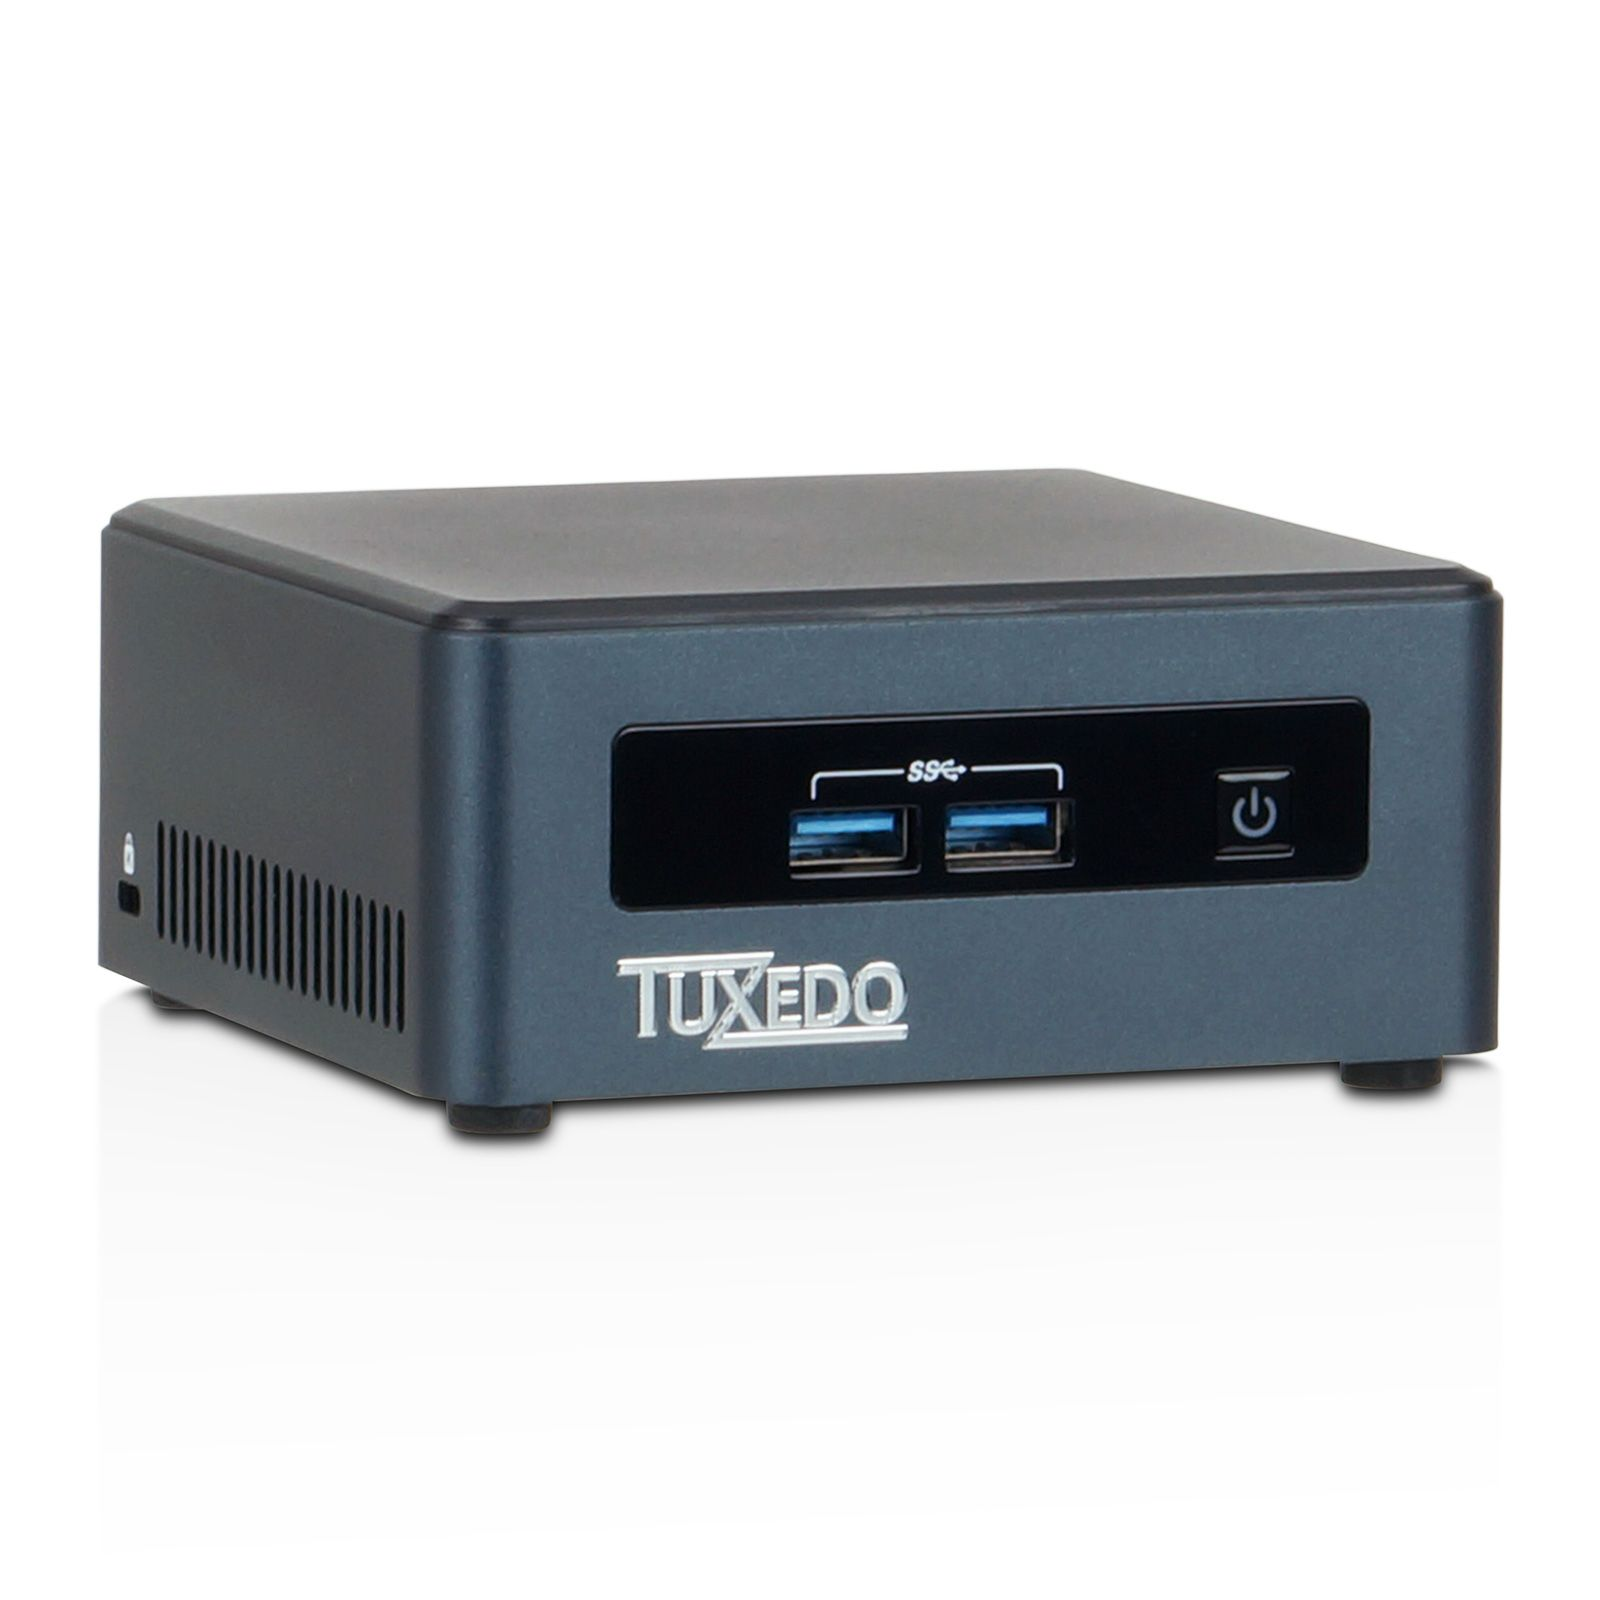 Tuxedo Nano Linux based mini PC